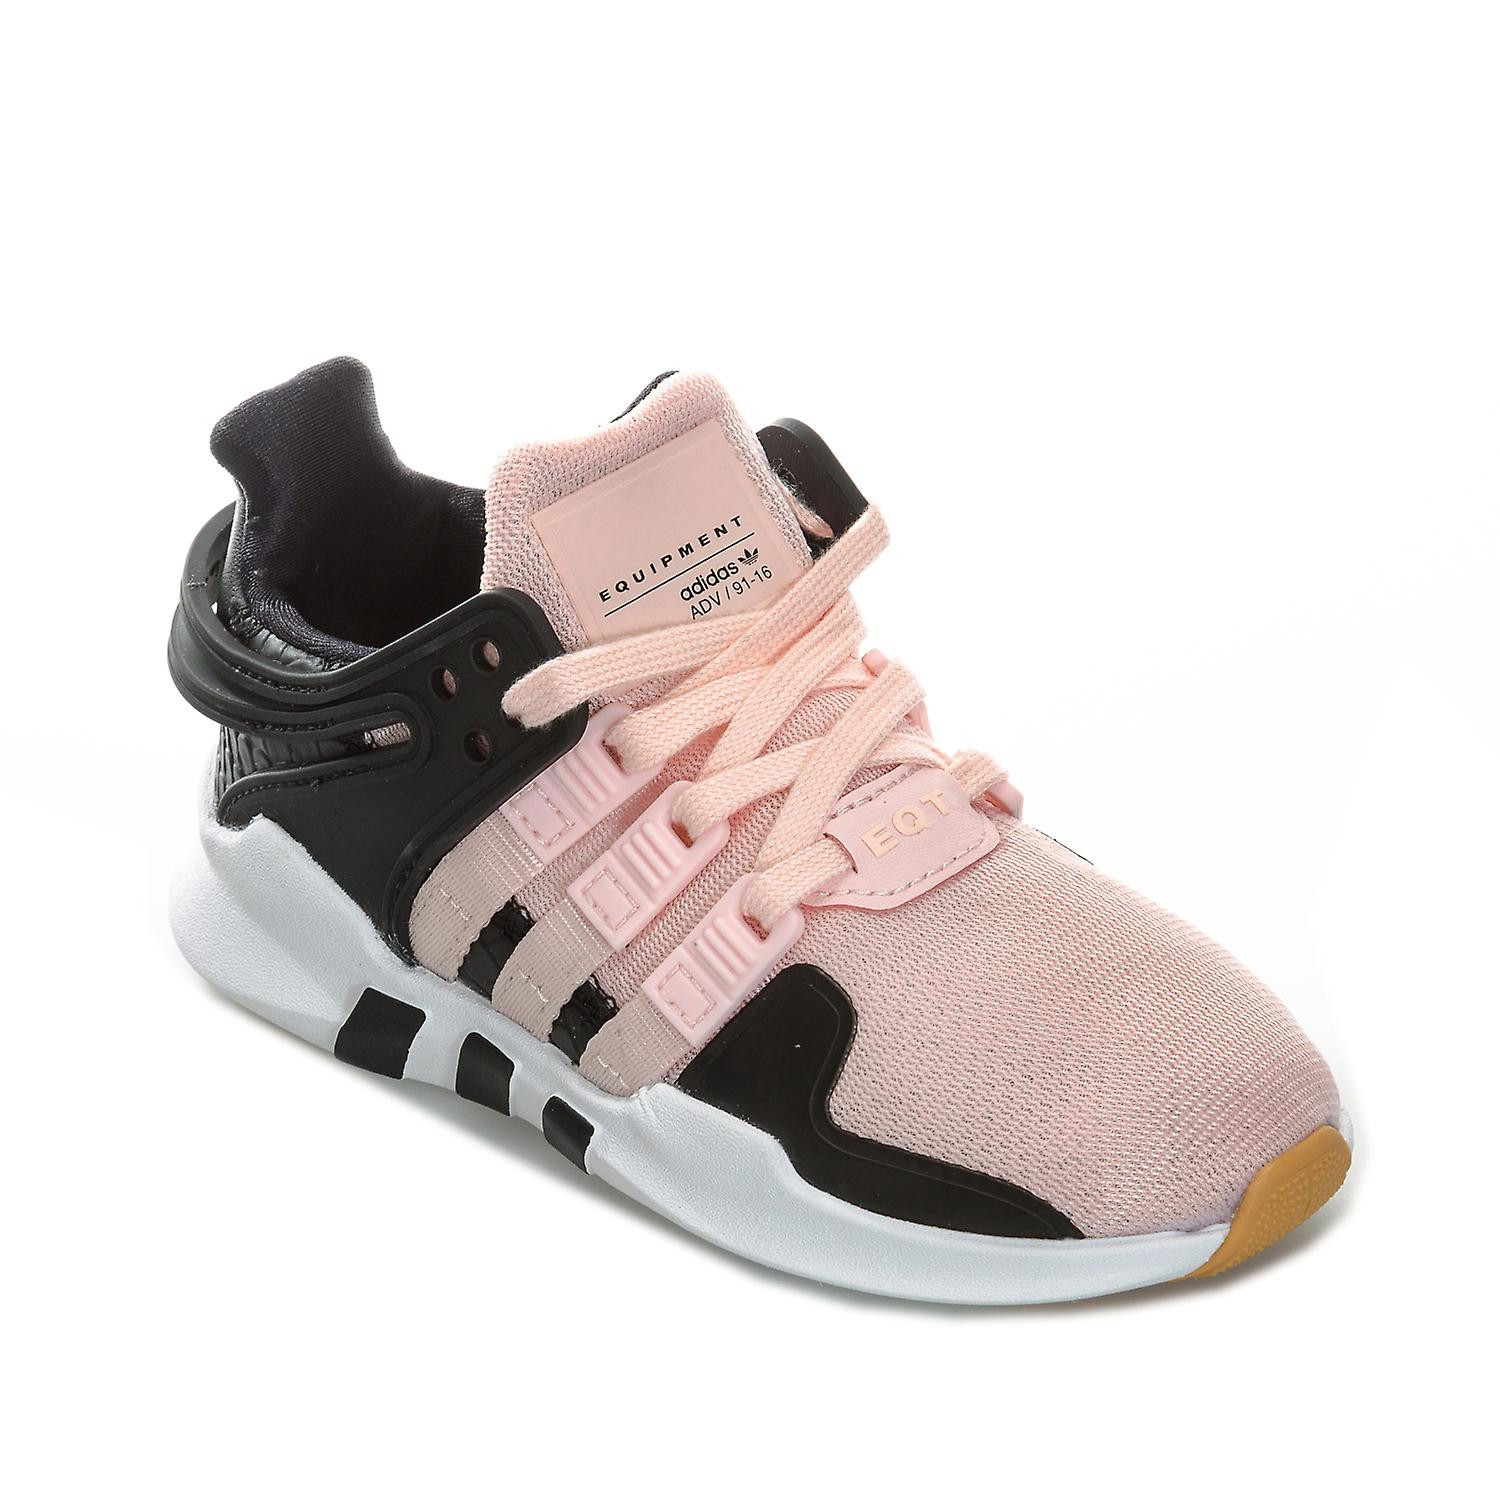 new product f3383 b5589 Children Girls adidas Originals Eqt Support Adv Trainers In Pink- Lace